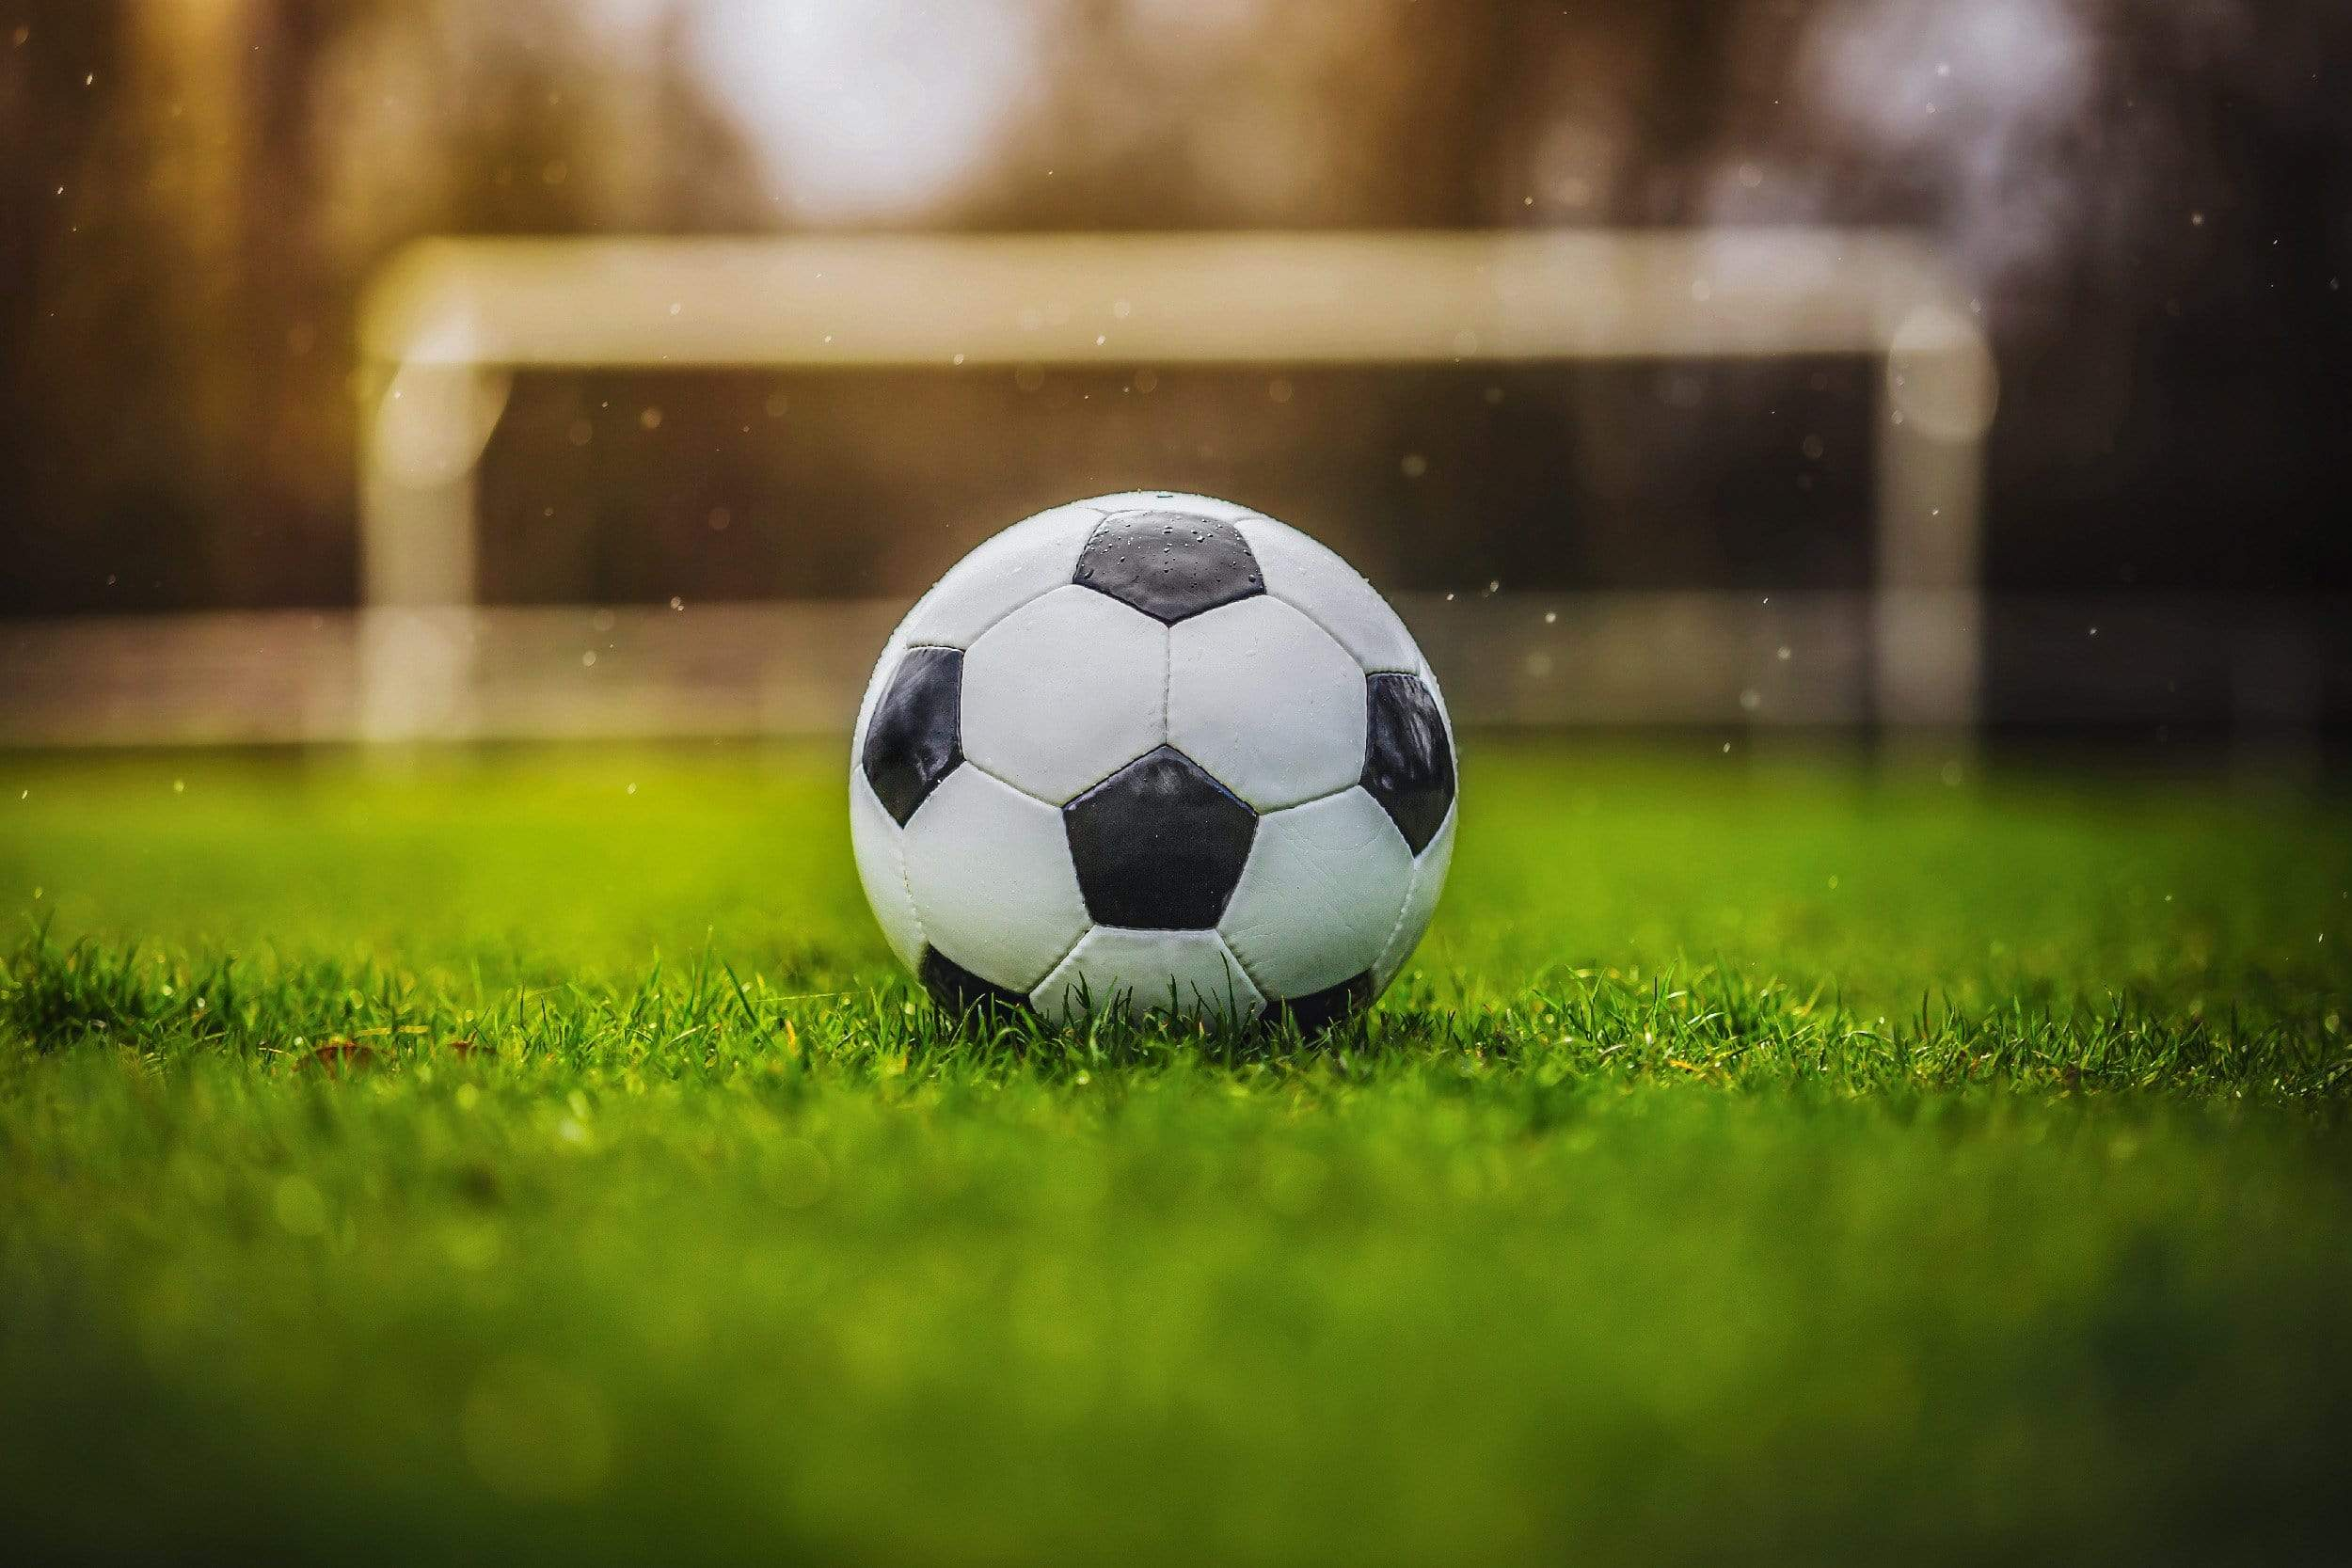 Soccer ball with goal background